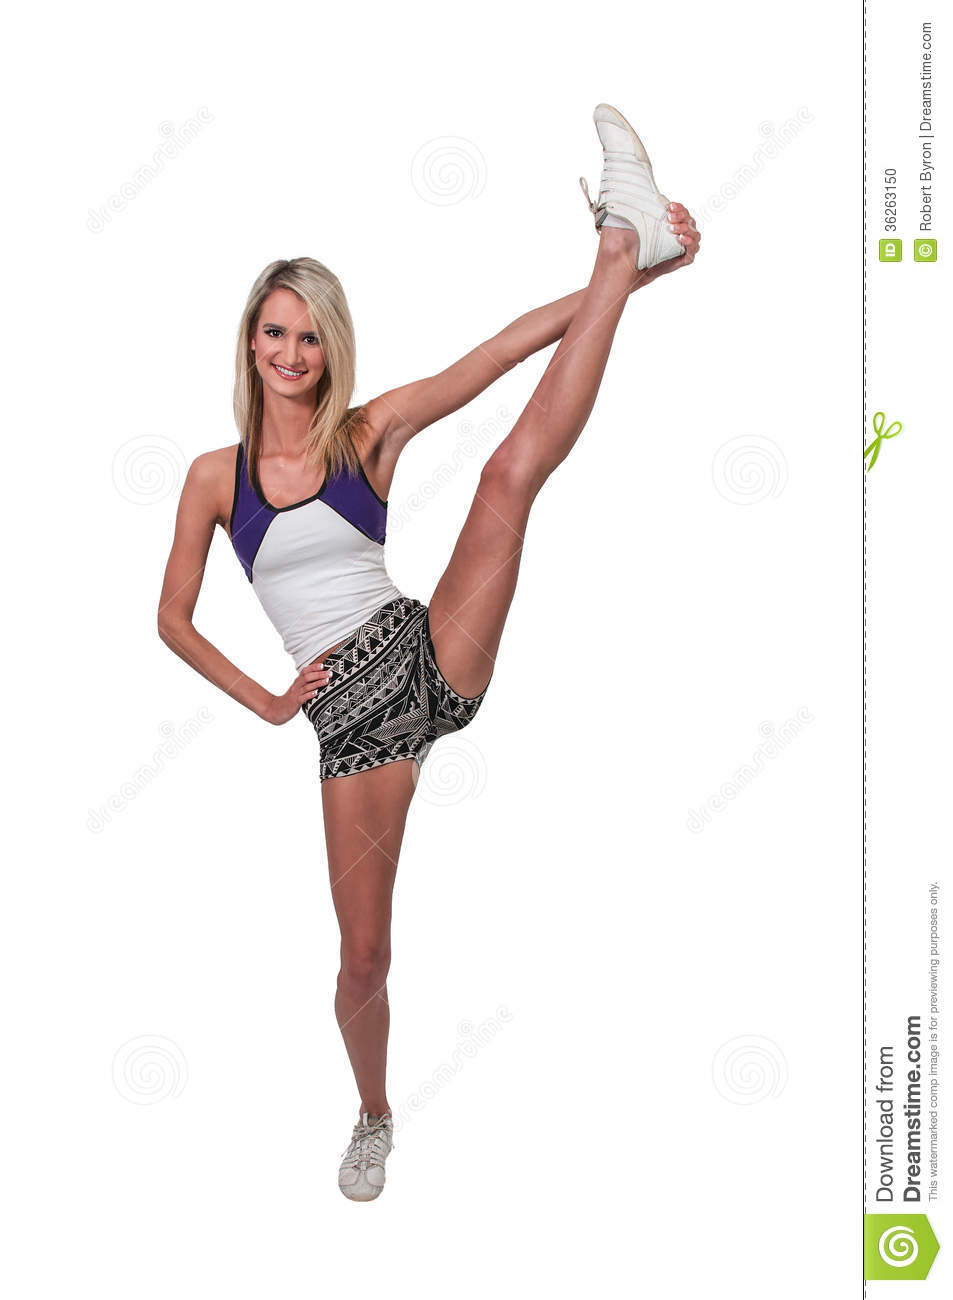 Beautiful young woman in a cheerleading uniform.